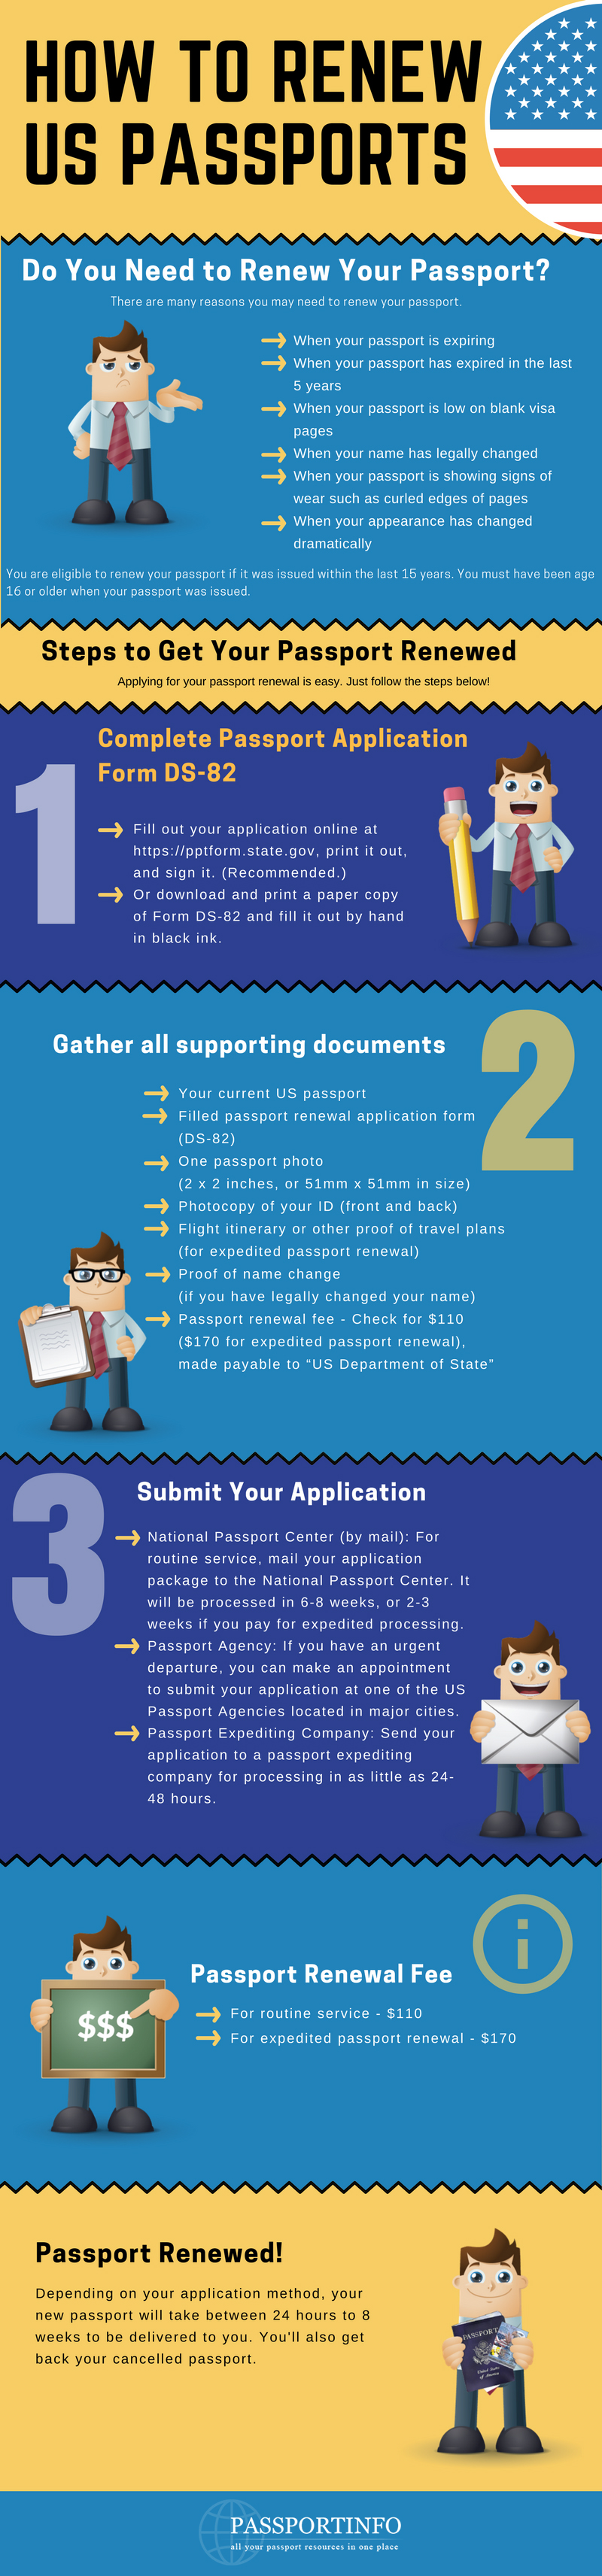 canadian passport application expedited fee